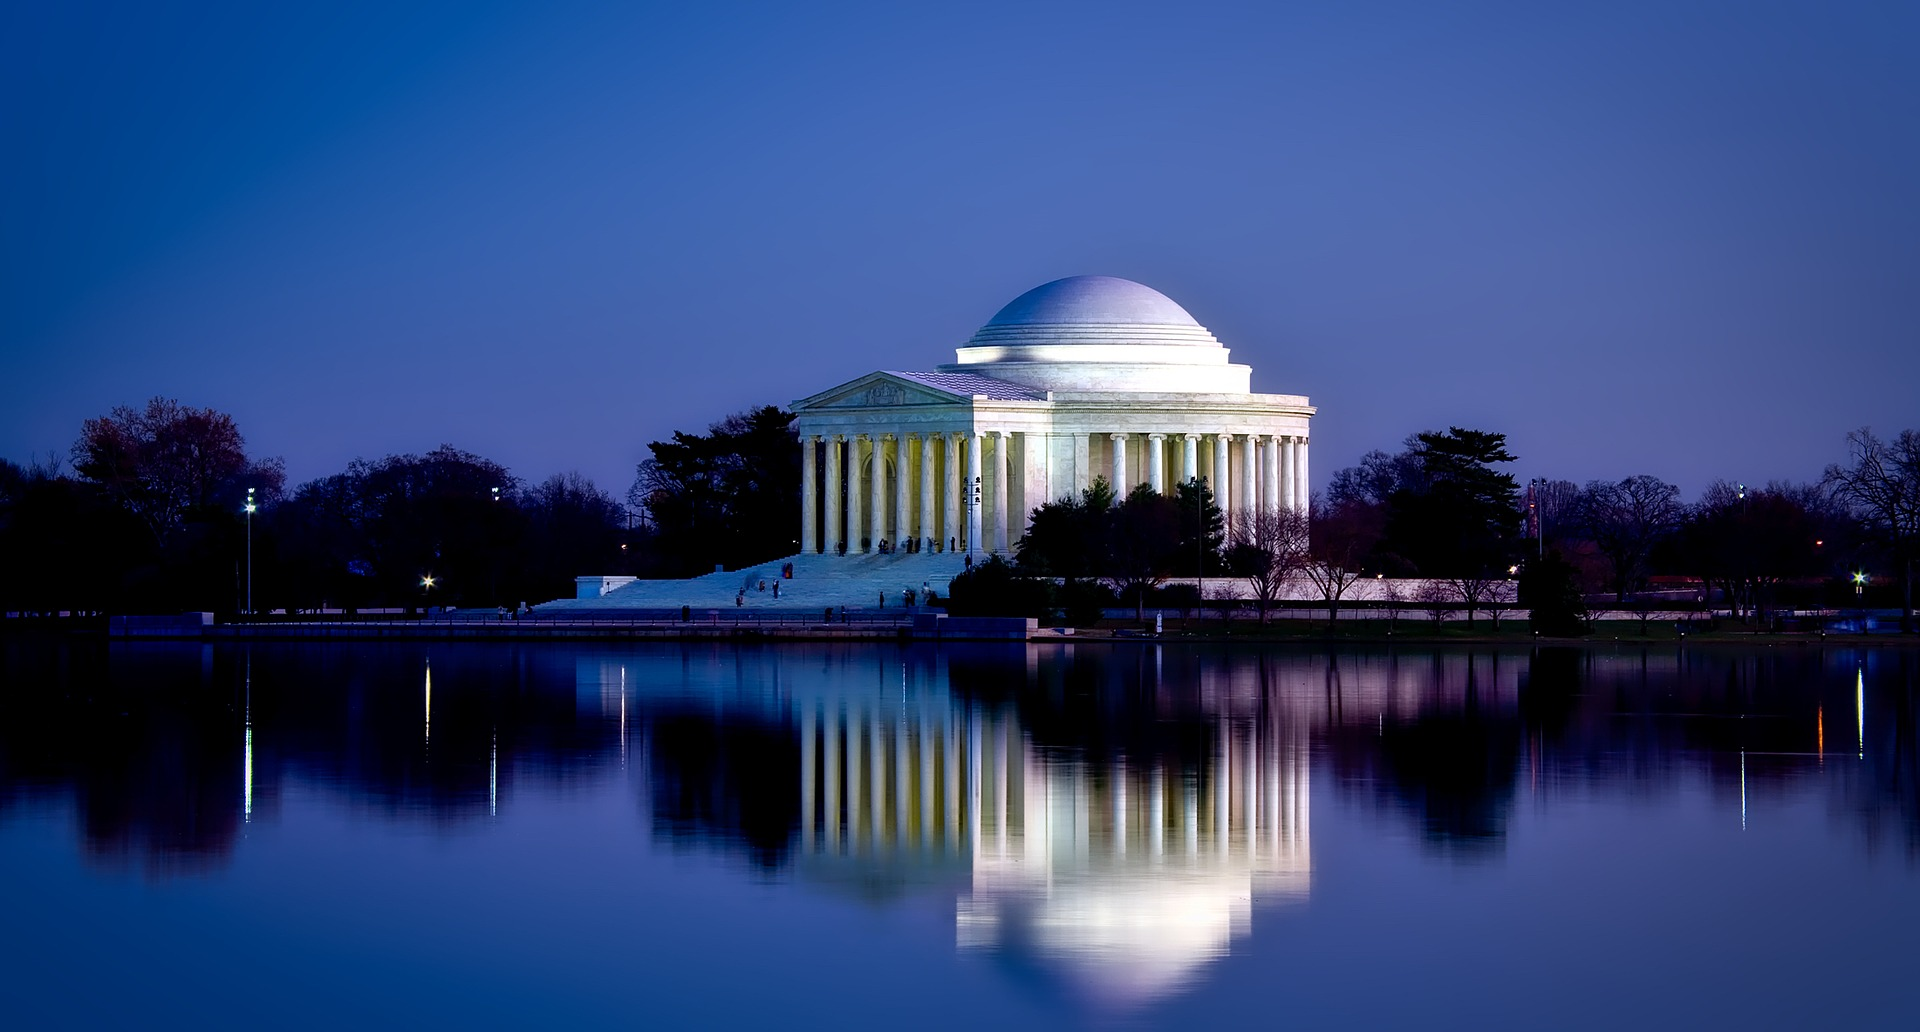 jefferson-memorial-1626580_1920